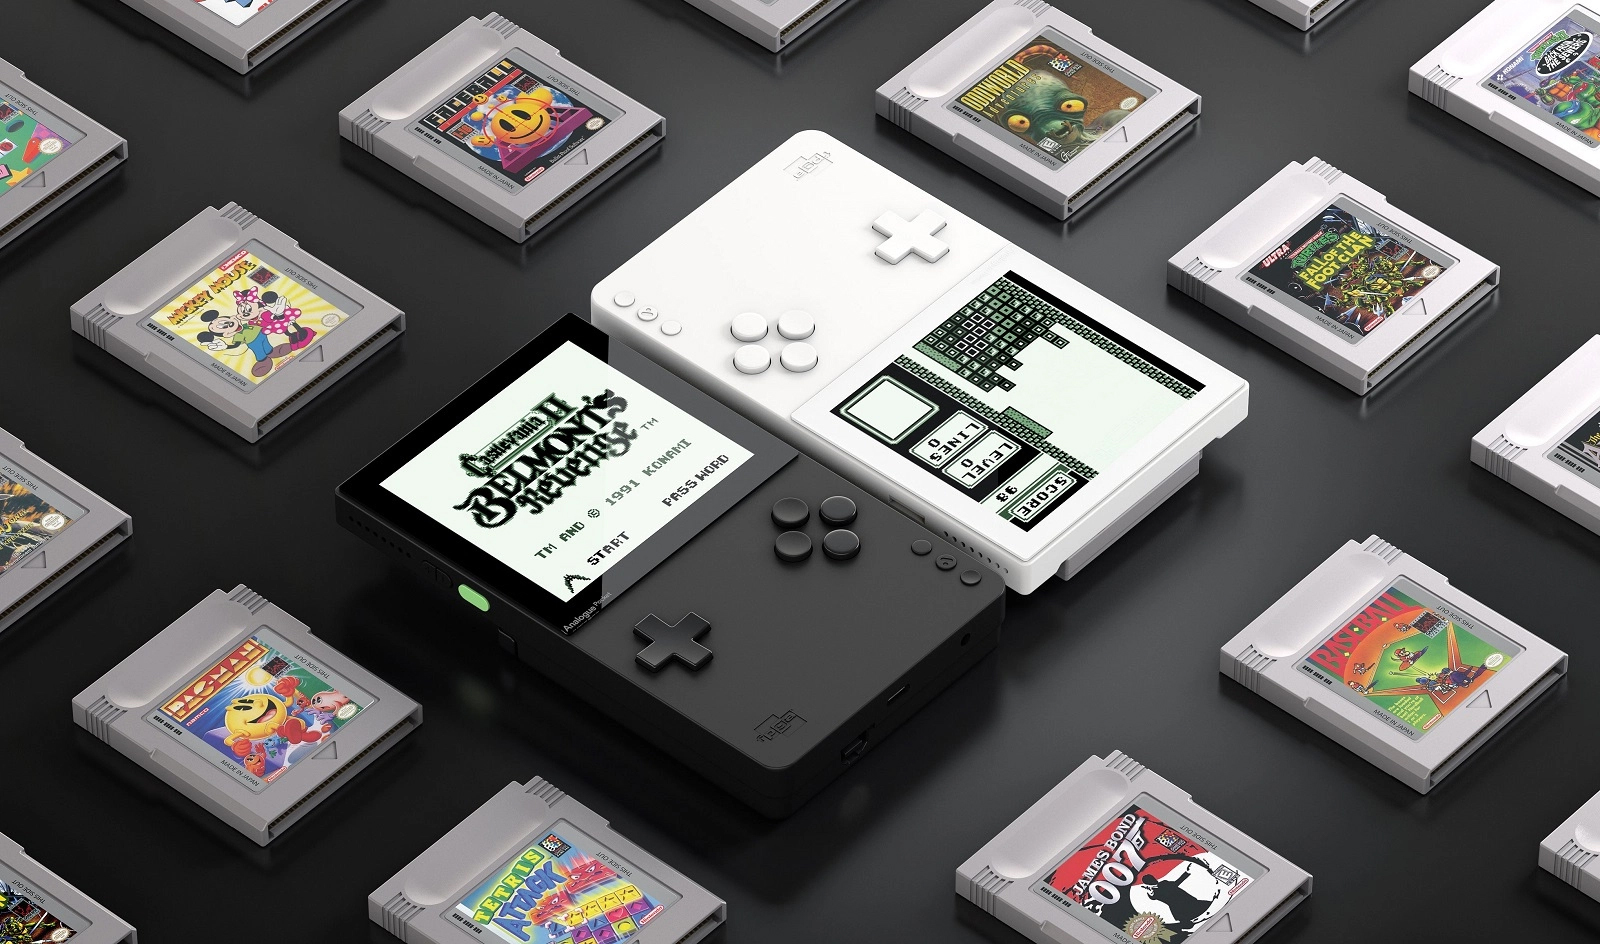 Analogue Pocket revivirá el Game Boy y otras consolas portátiles